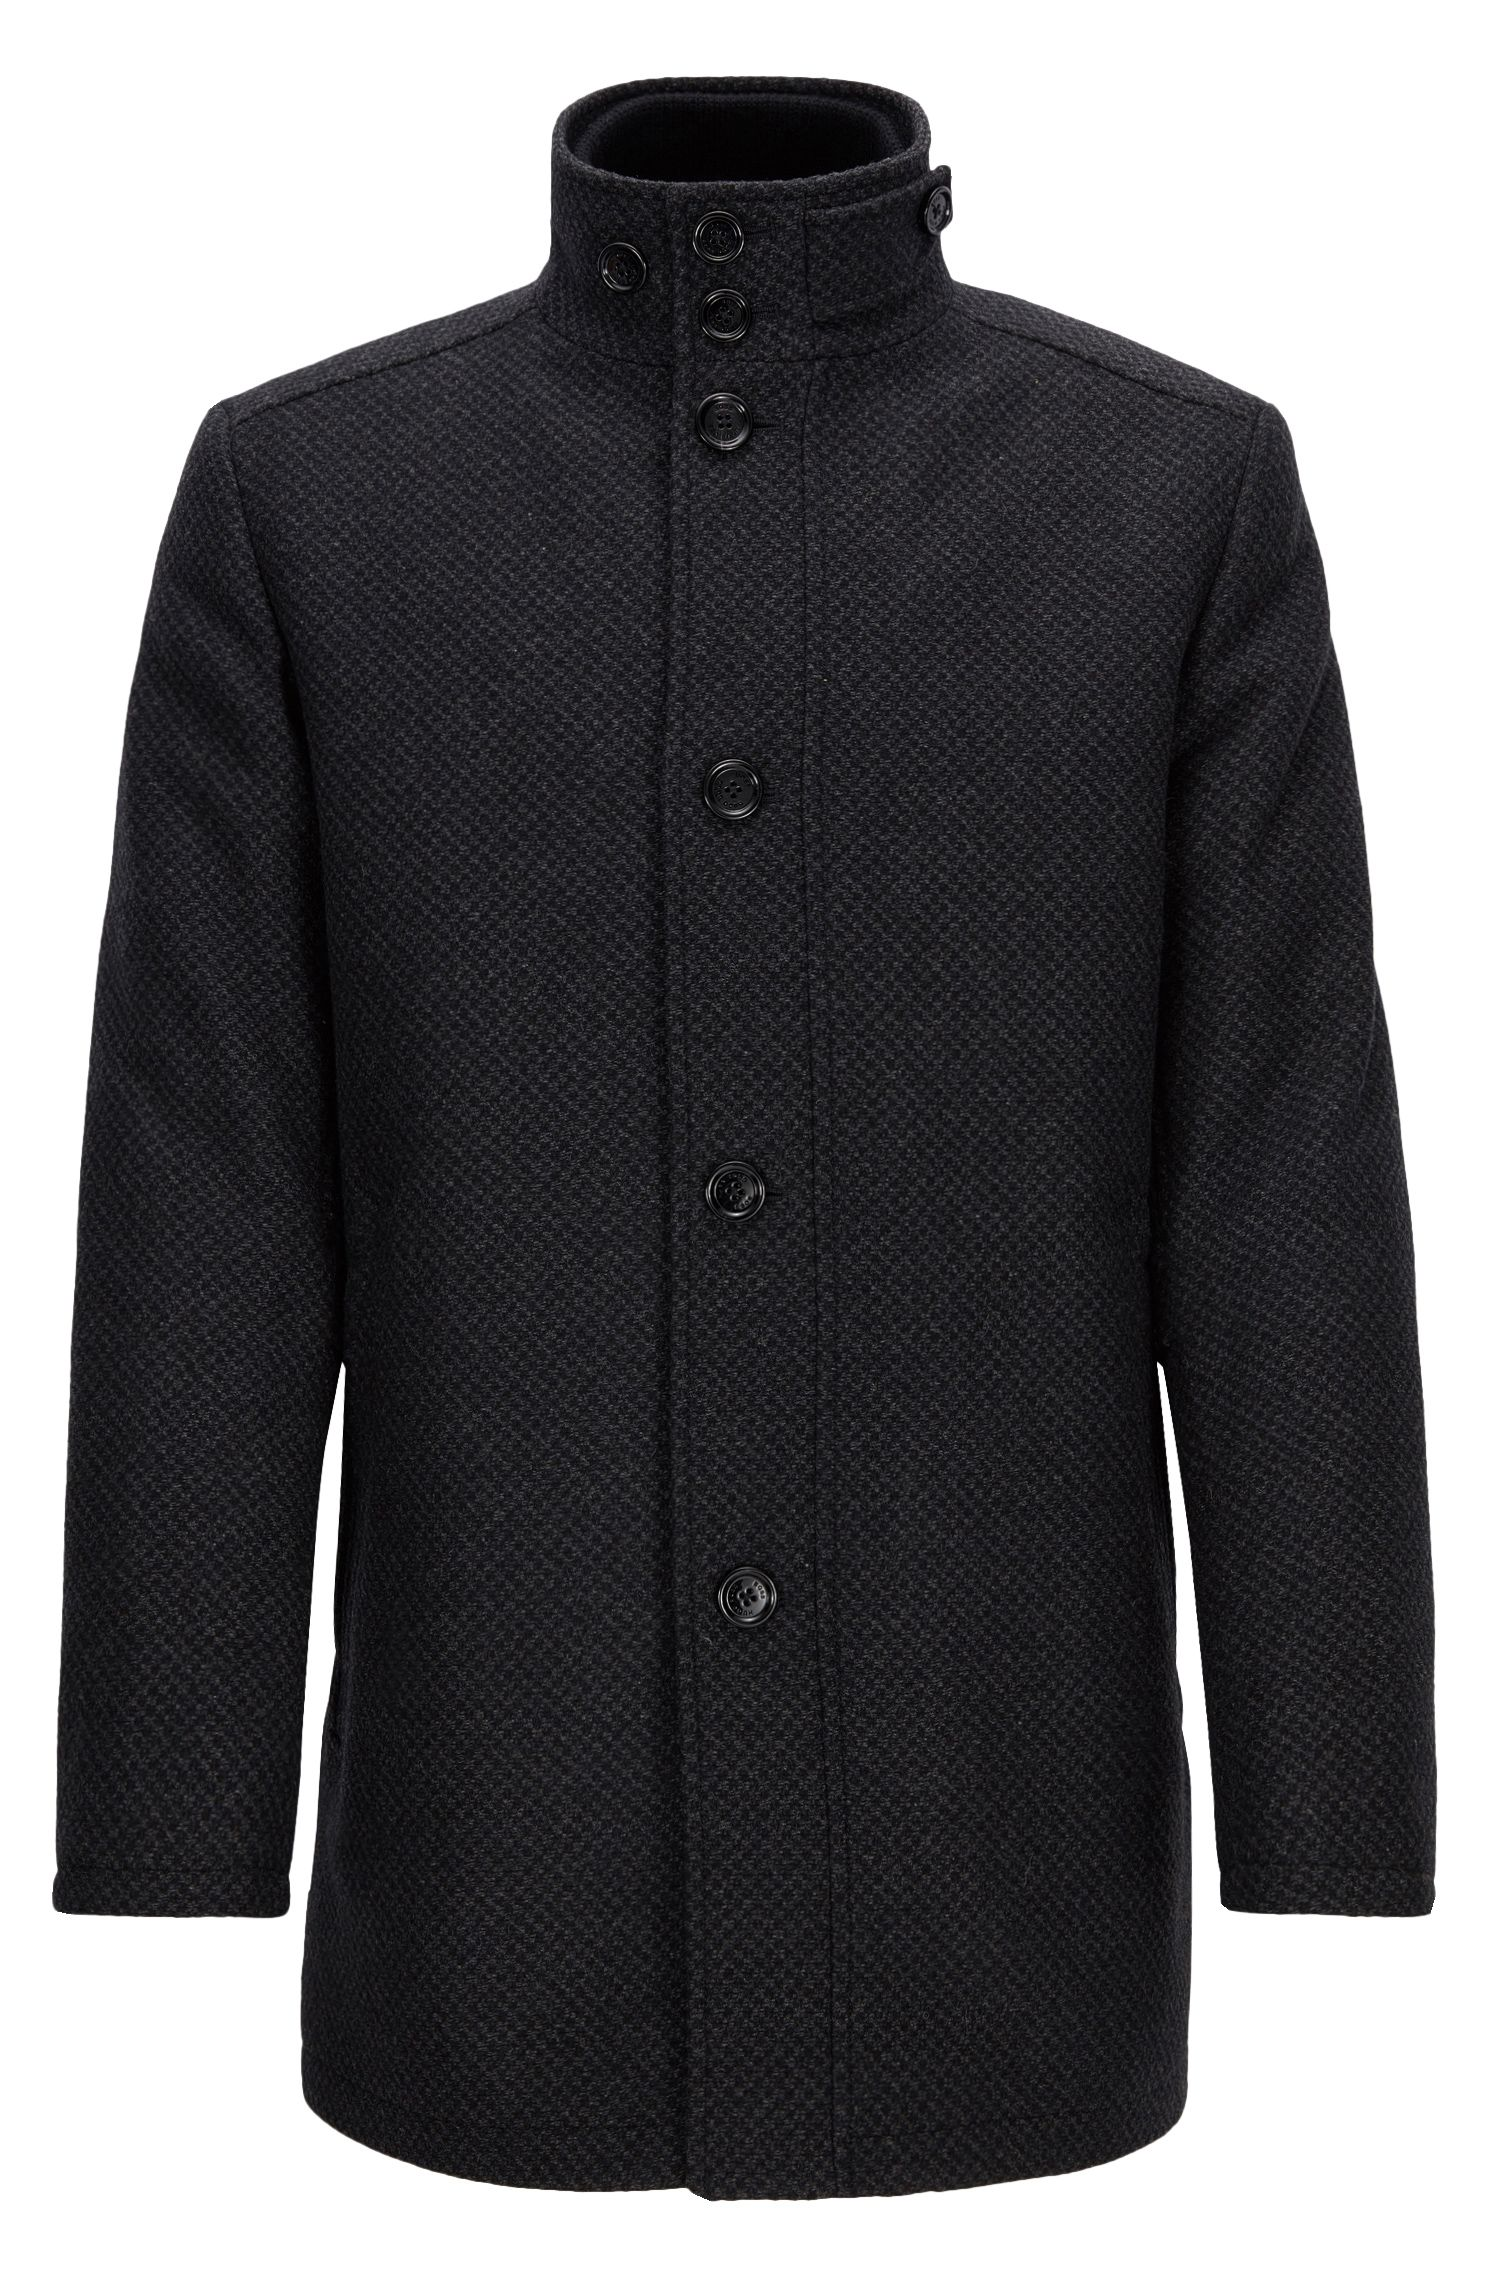 Wave-blocker coat in a wool blend